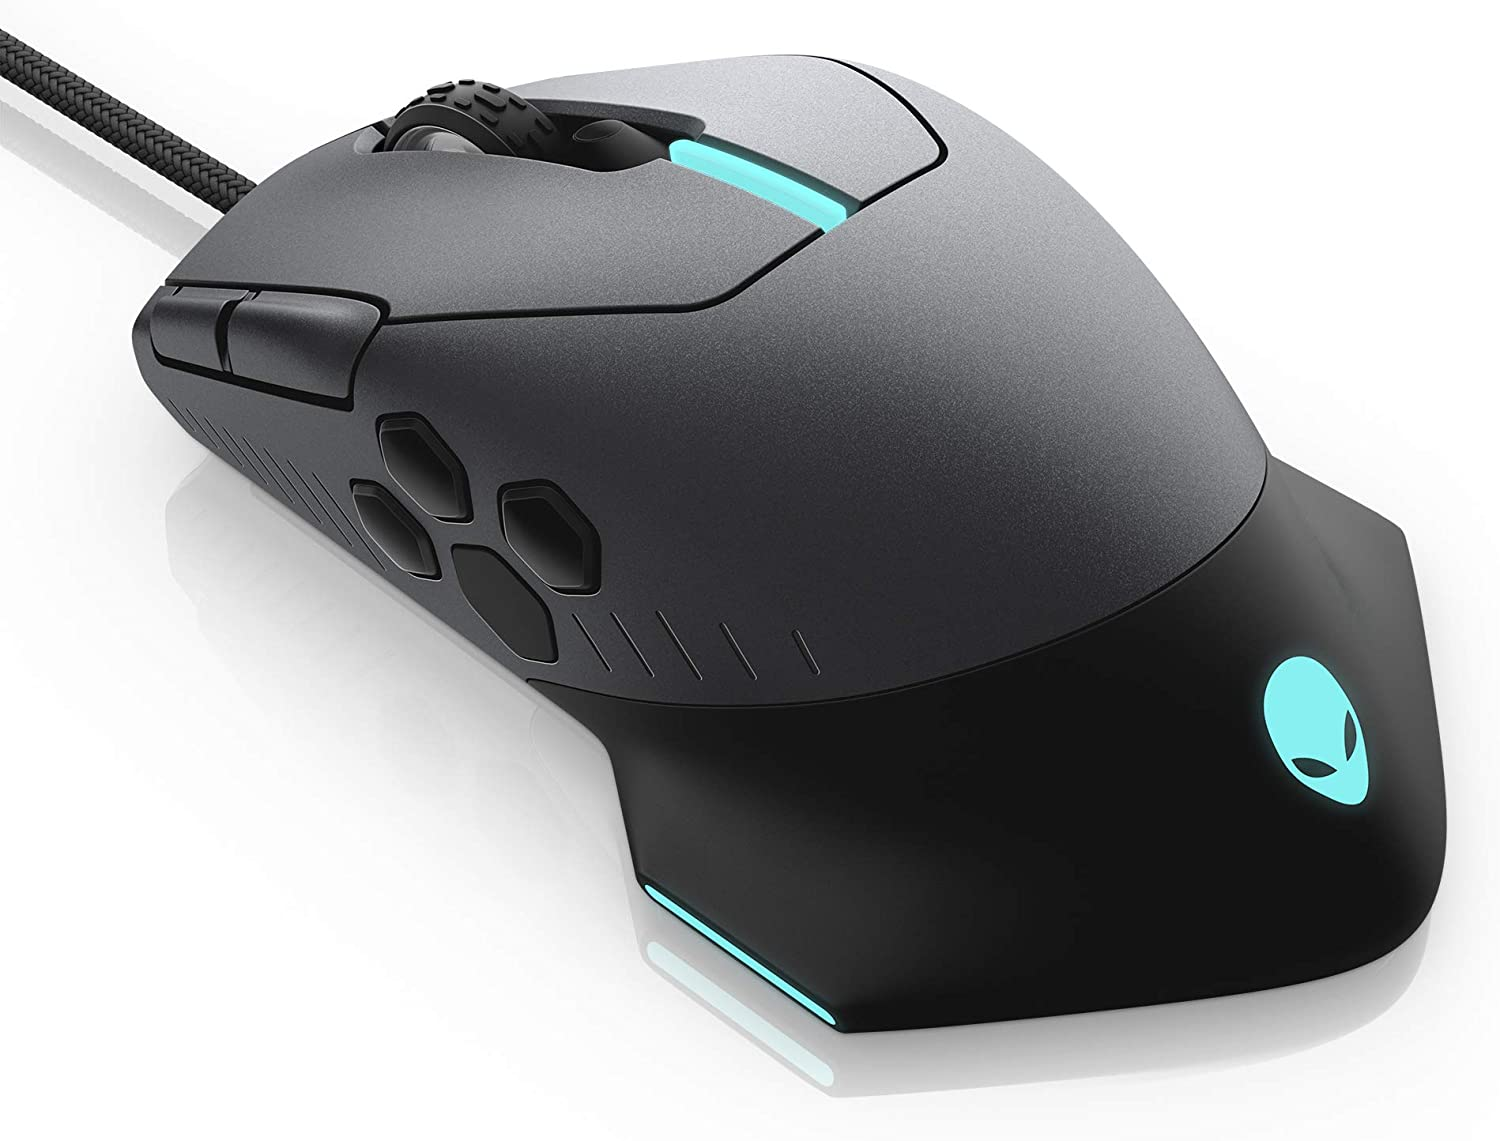 Alienware Gaming Mouse 510M RGB Gaming Mouse AW510M: 16, 000 DPI Optical Sensor - Alienfx RGB - 10 Buttons - Adjustable Scroll Wheel - Large Click Anywhere L/R Buttons